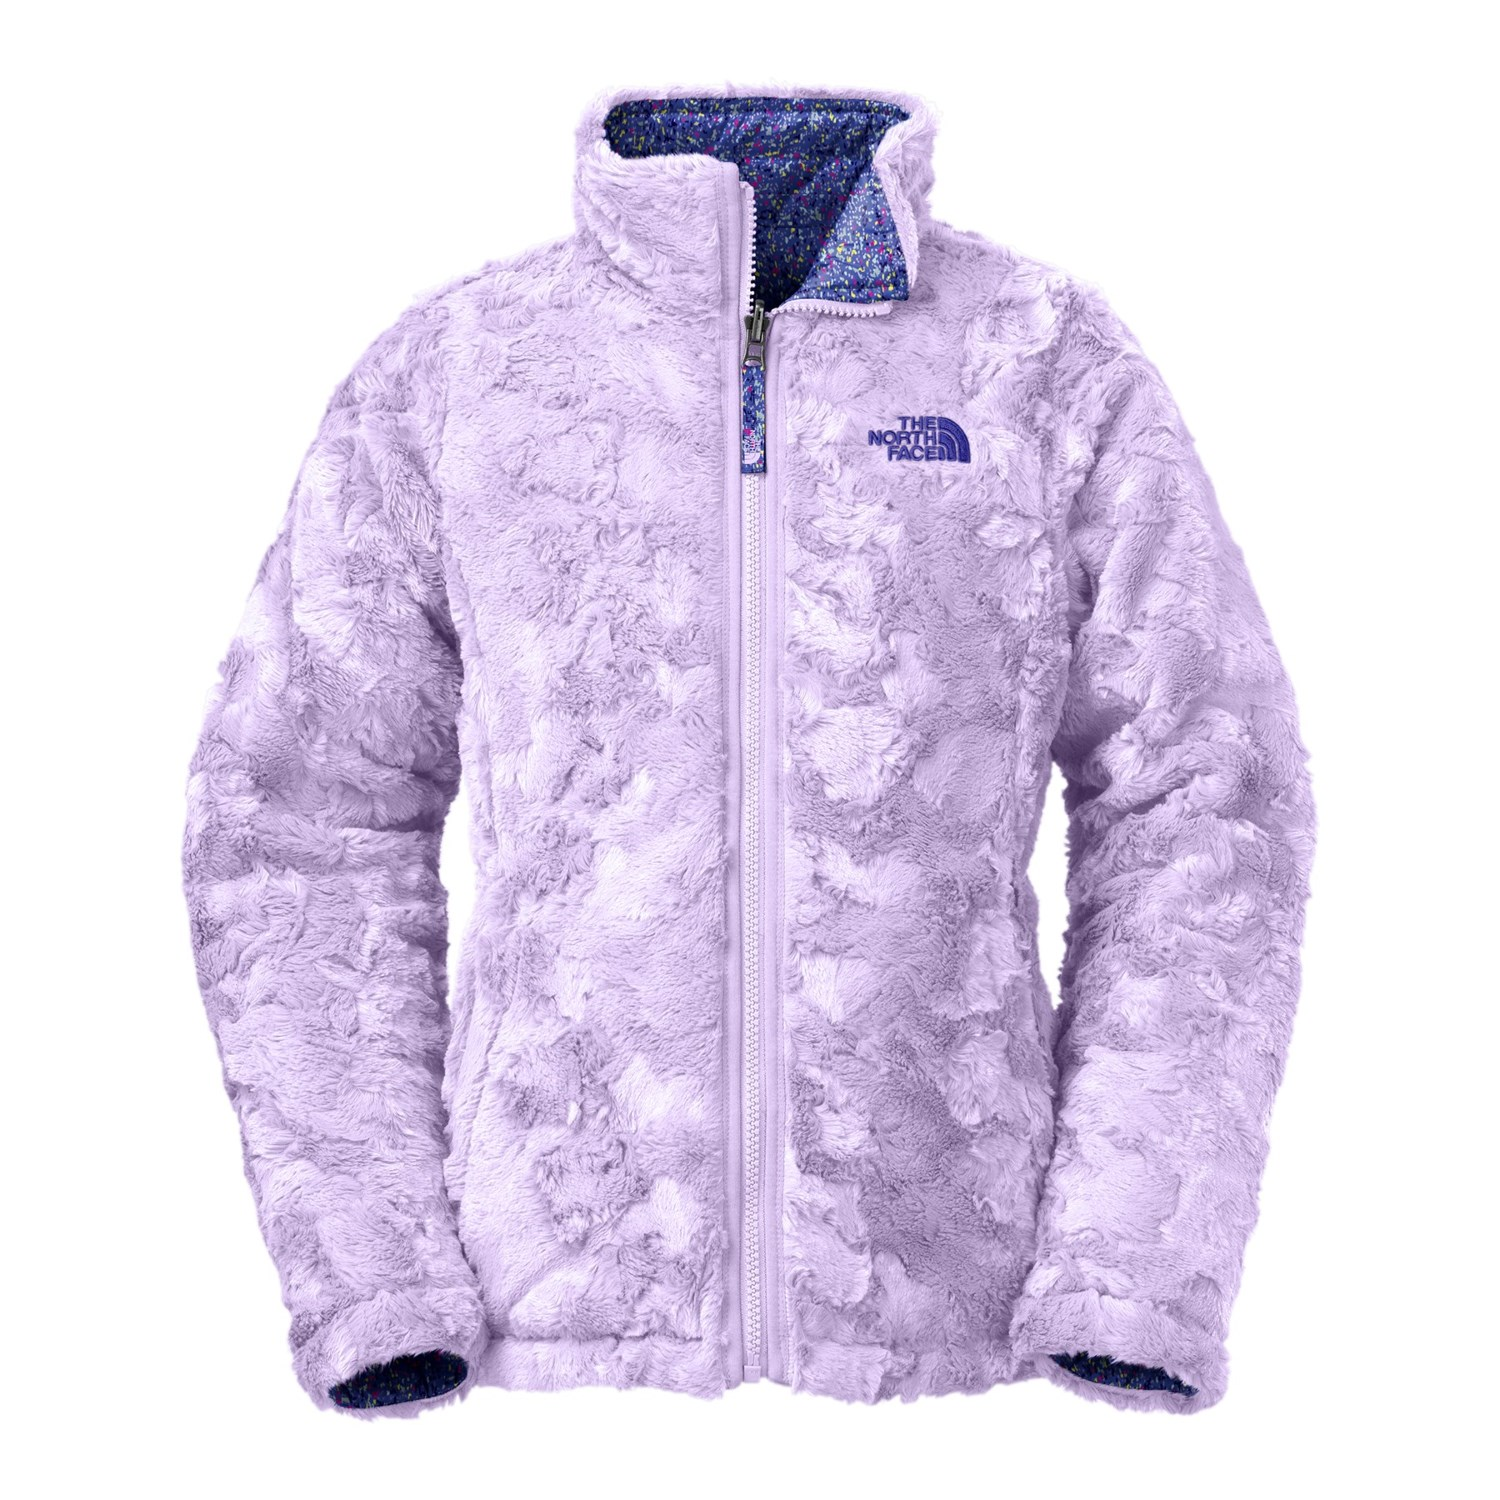 49c6fb6b6 the north face girls' reversible mossbud swirl insulated jacket ...